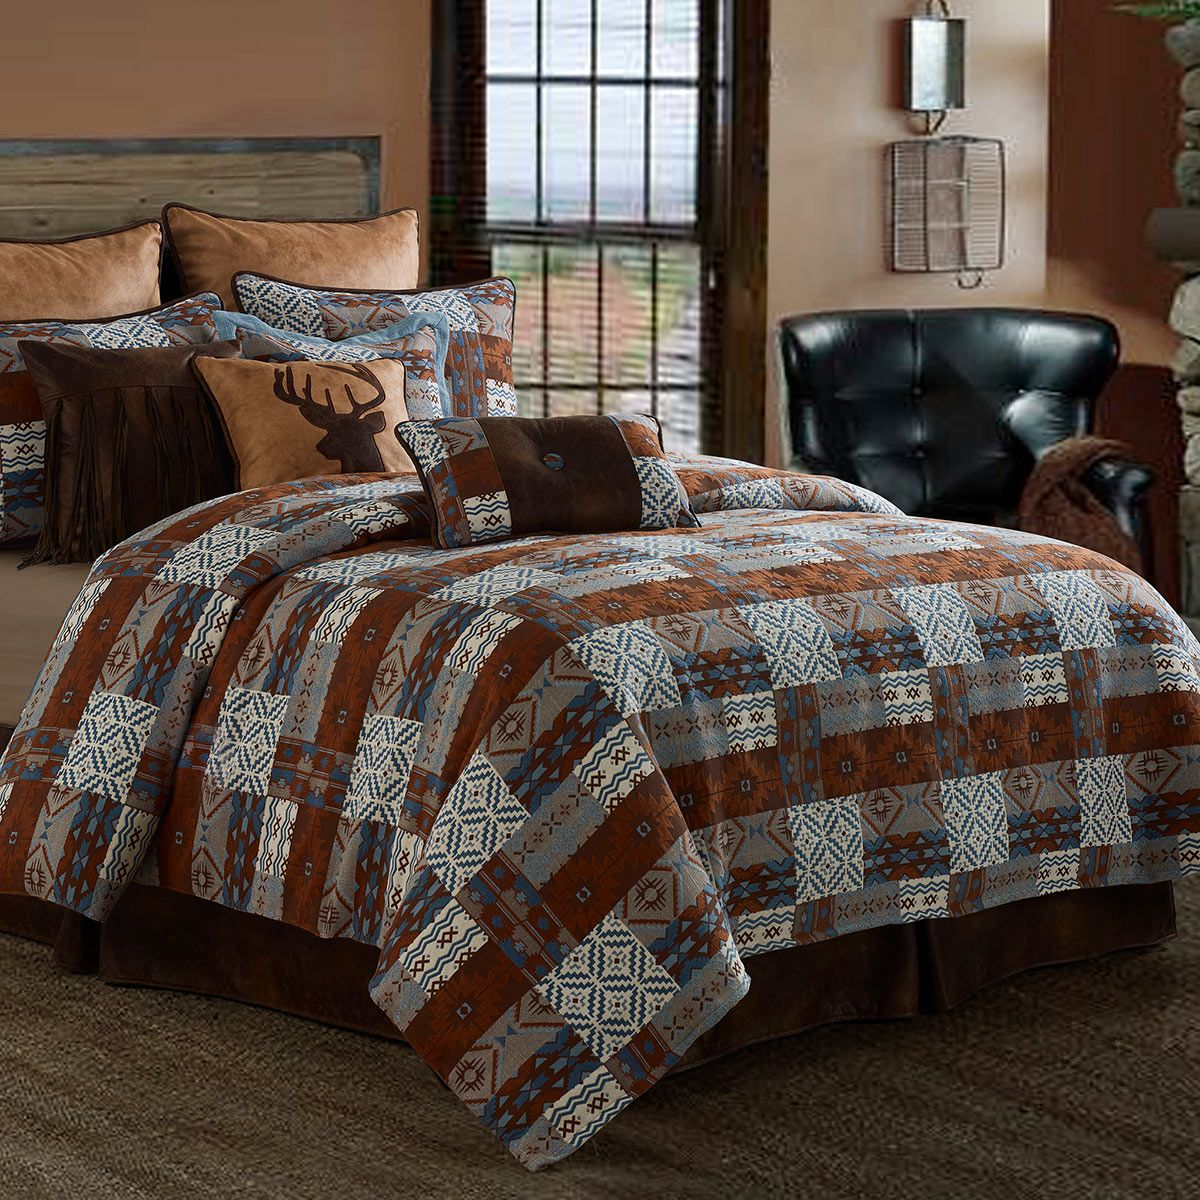 Old Dominion Patchwork Duvet - King